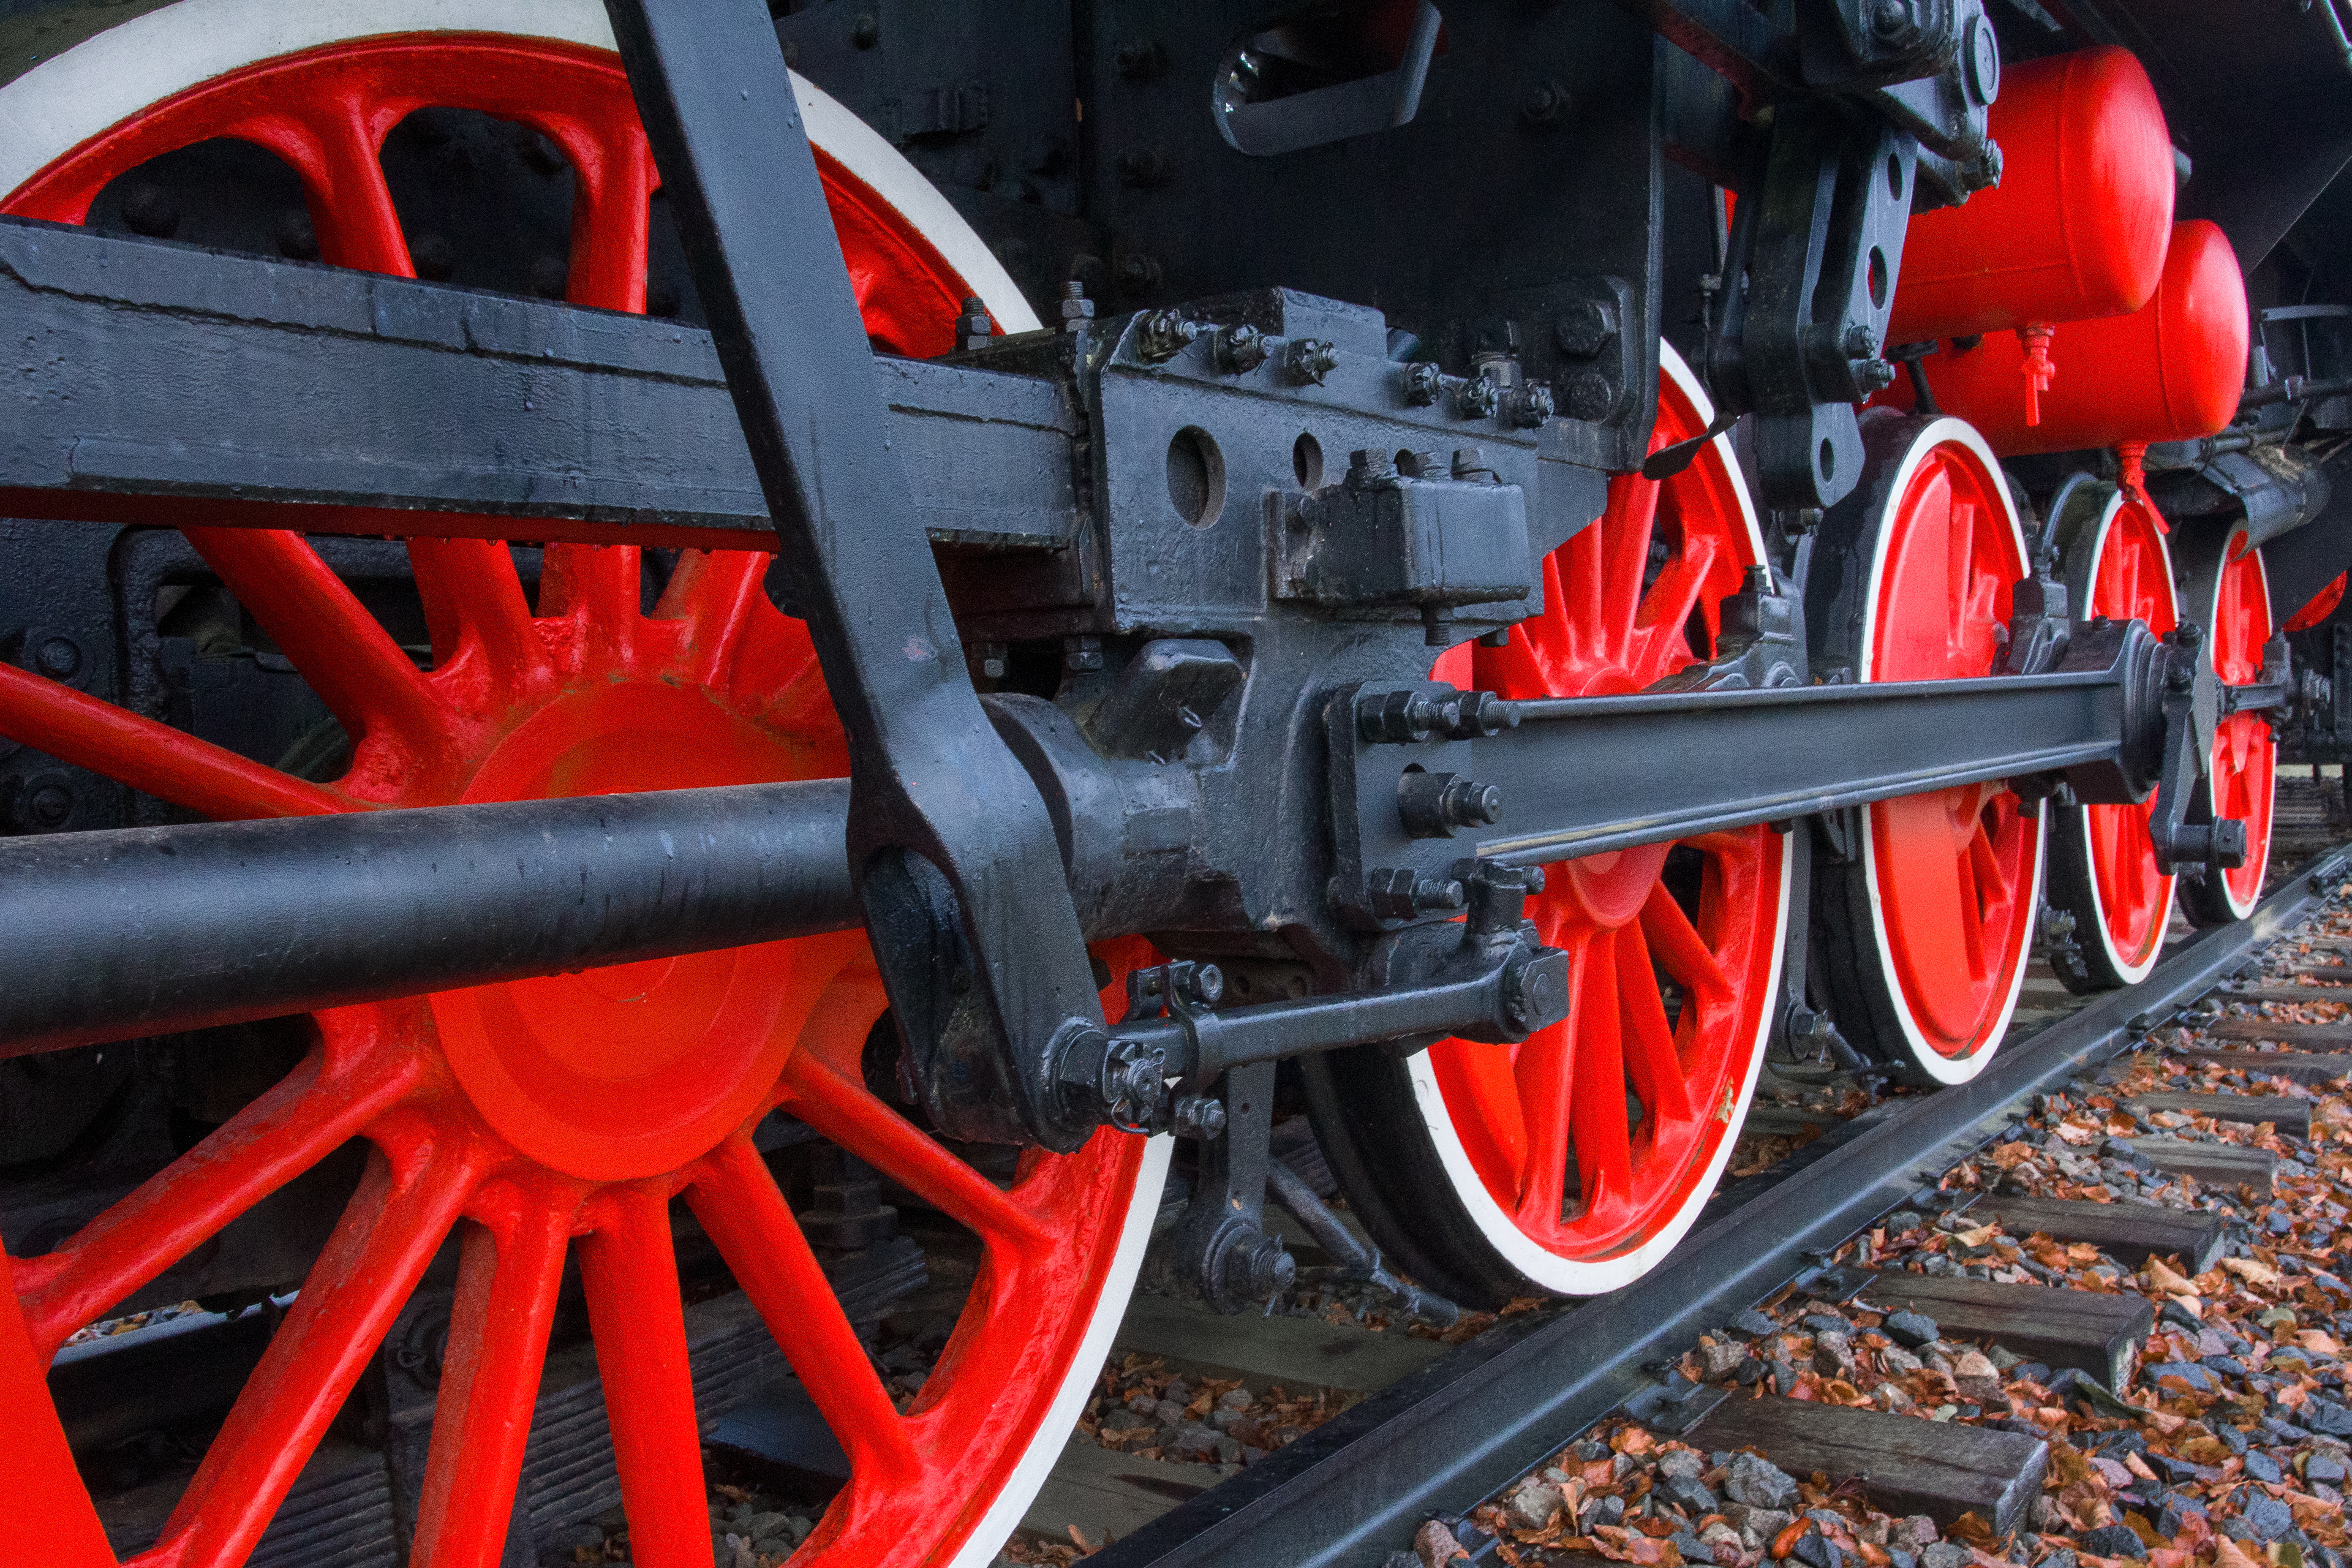 Fragment of a retro locomotive on railway,red wheels of the black locomotive